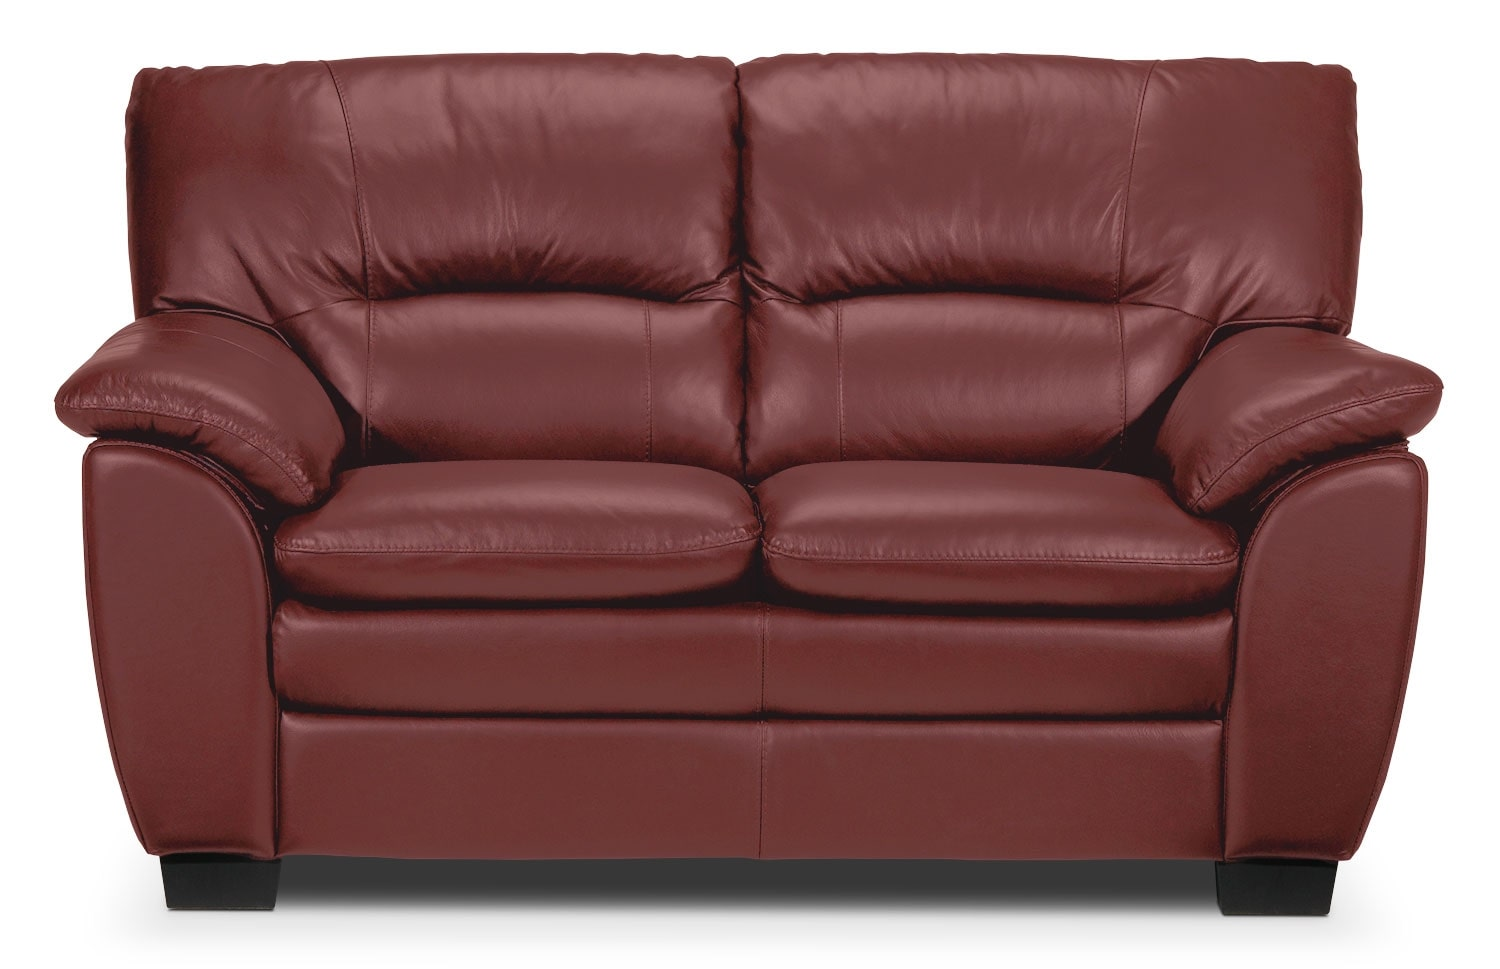 Living Room Furniture - Rodero Loveseat - Red